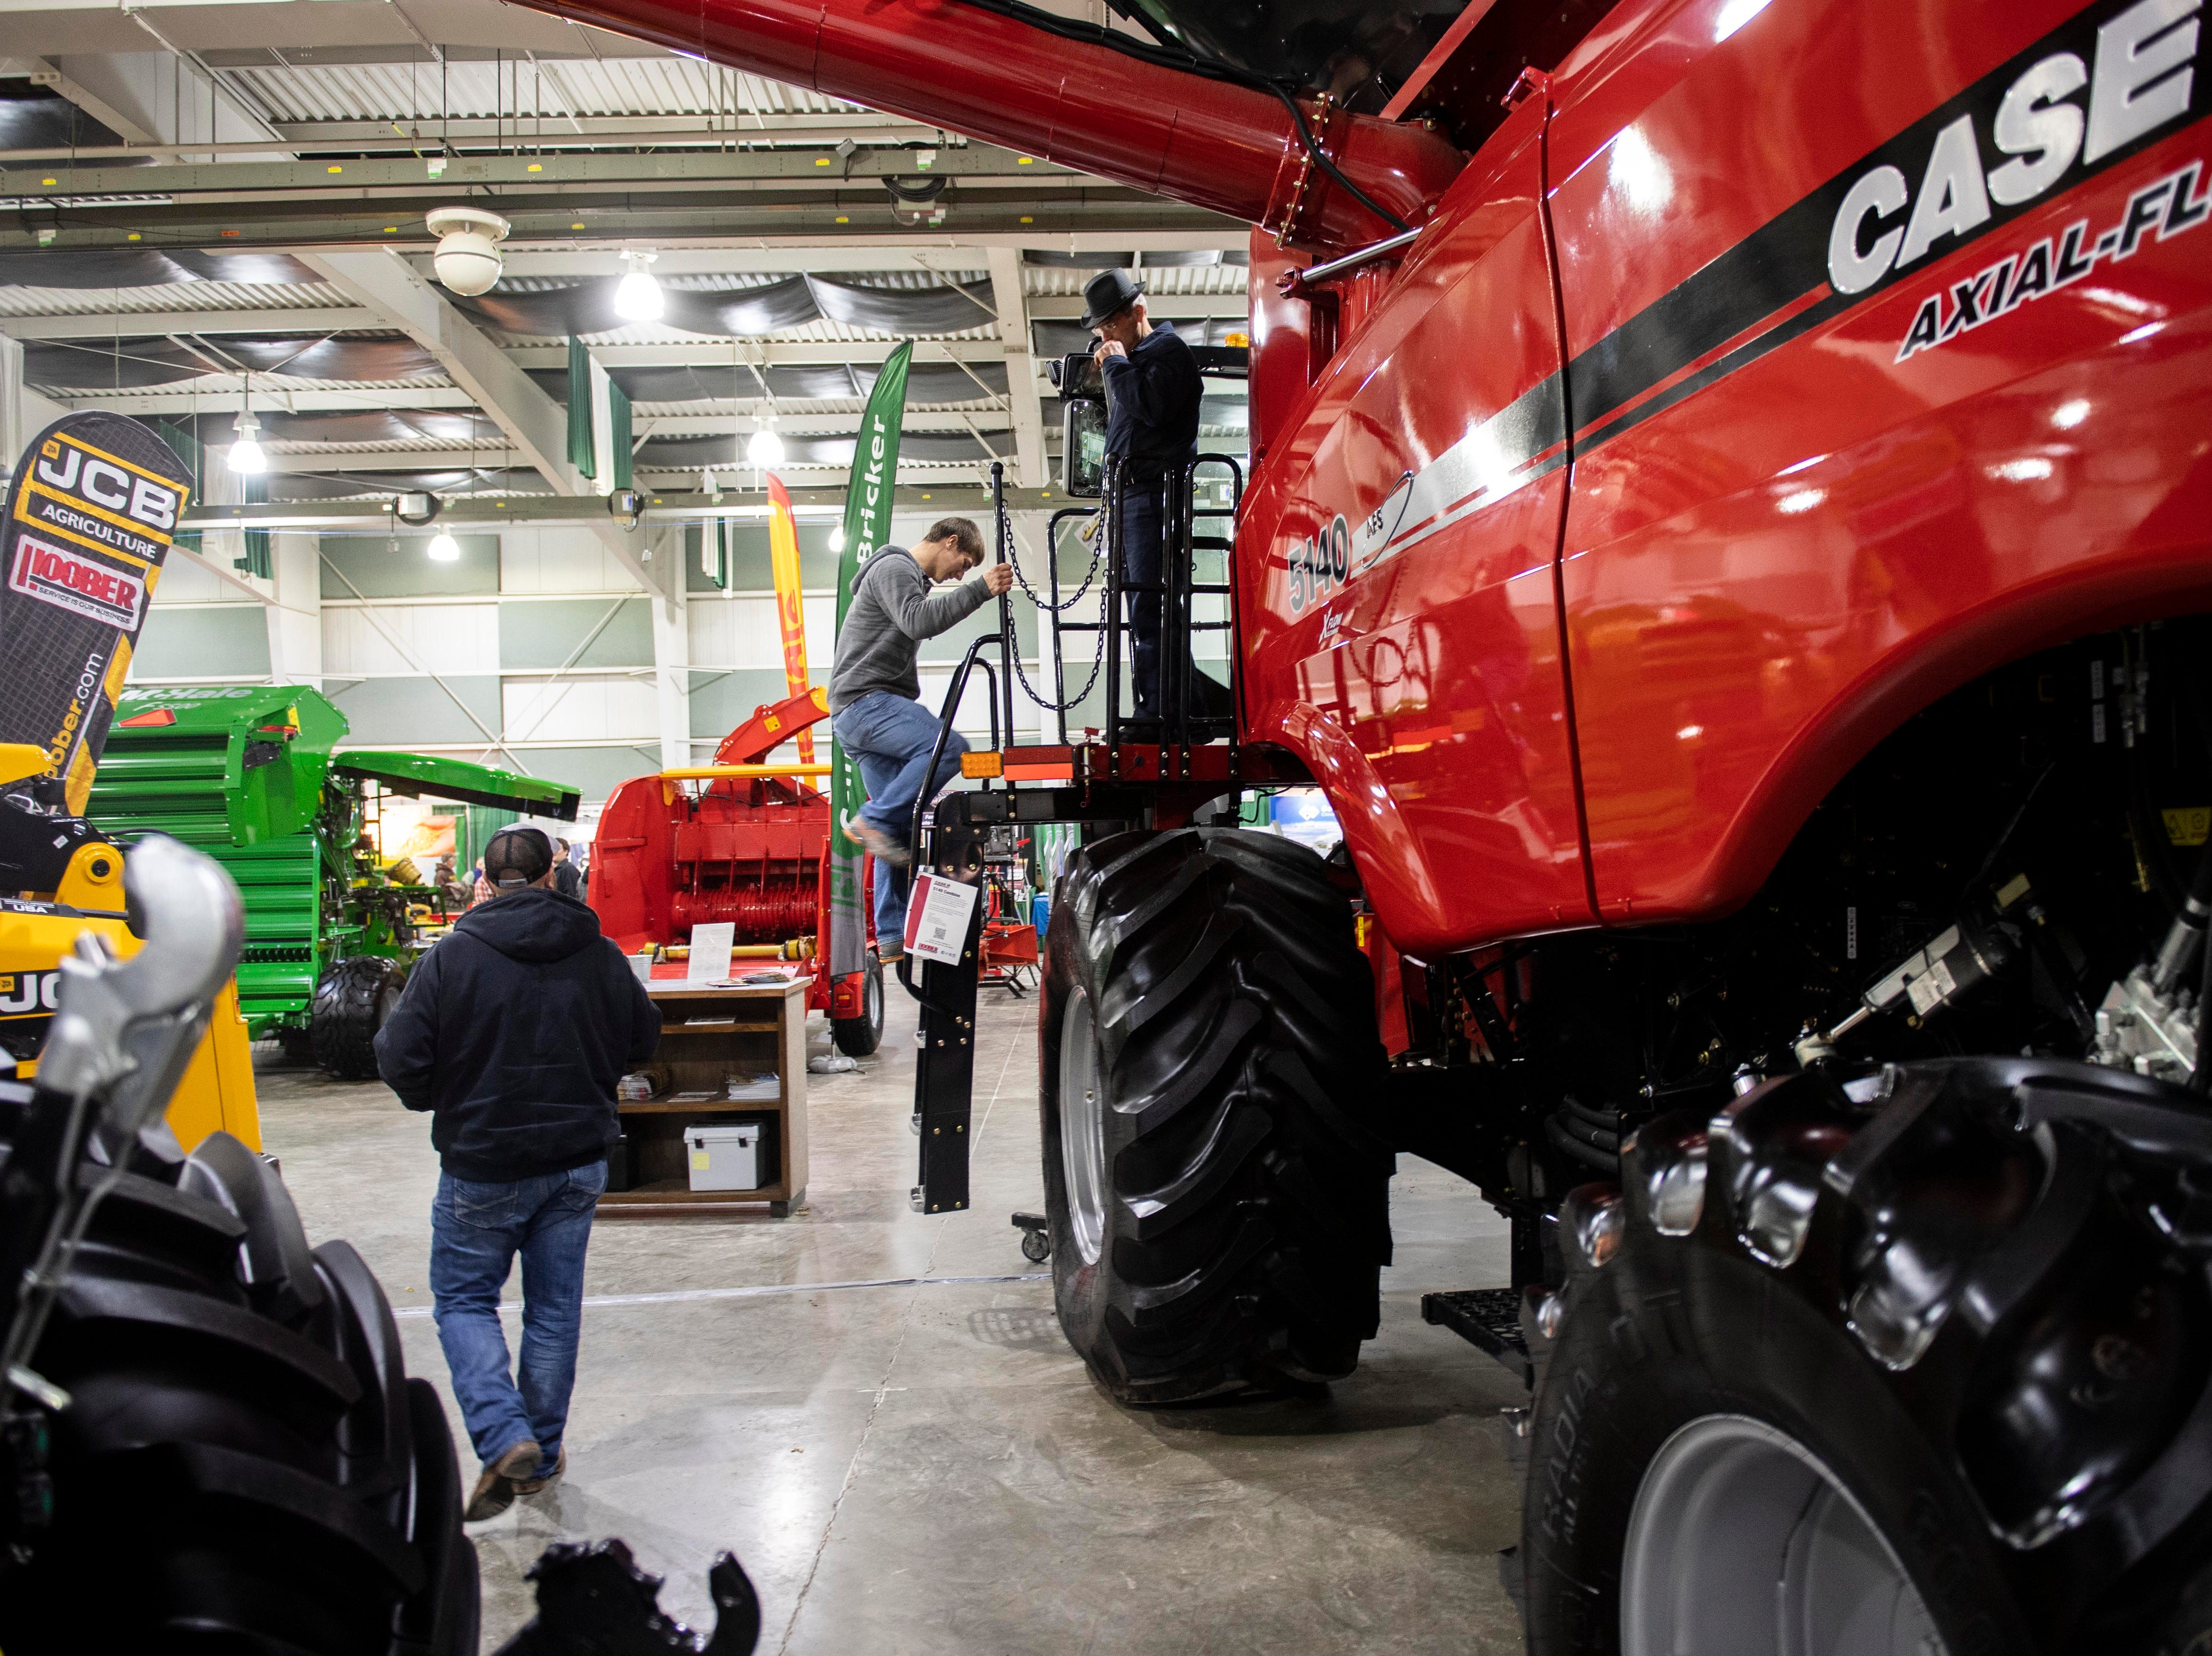 A man climbs down after checking out the inside of a combine, Tuesday, Jan. 8, 2019. The Keystone Farm Show has nearly 420 vendors and is expected to bring up to 15,000 people to the York Expo Center. The show runs through Thursday, Jan. 10.